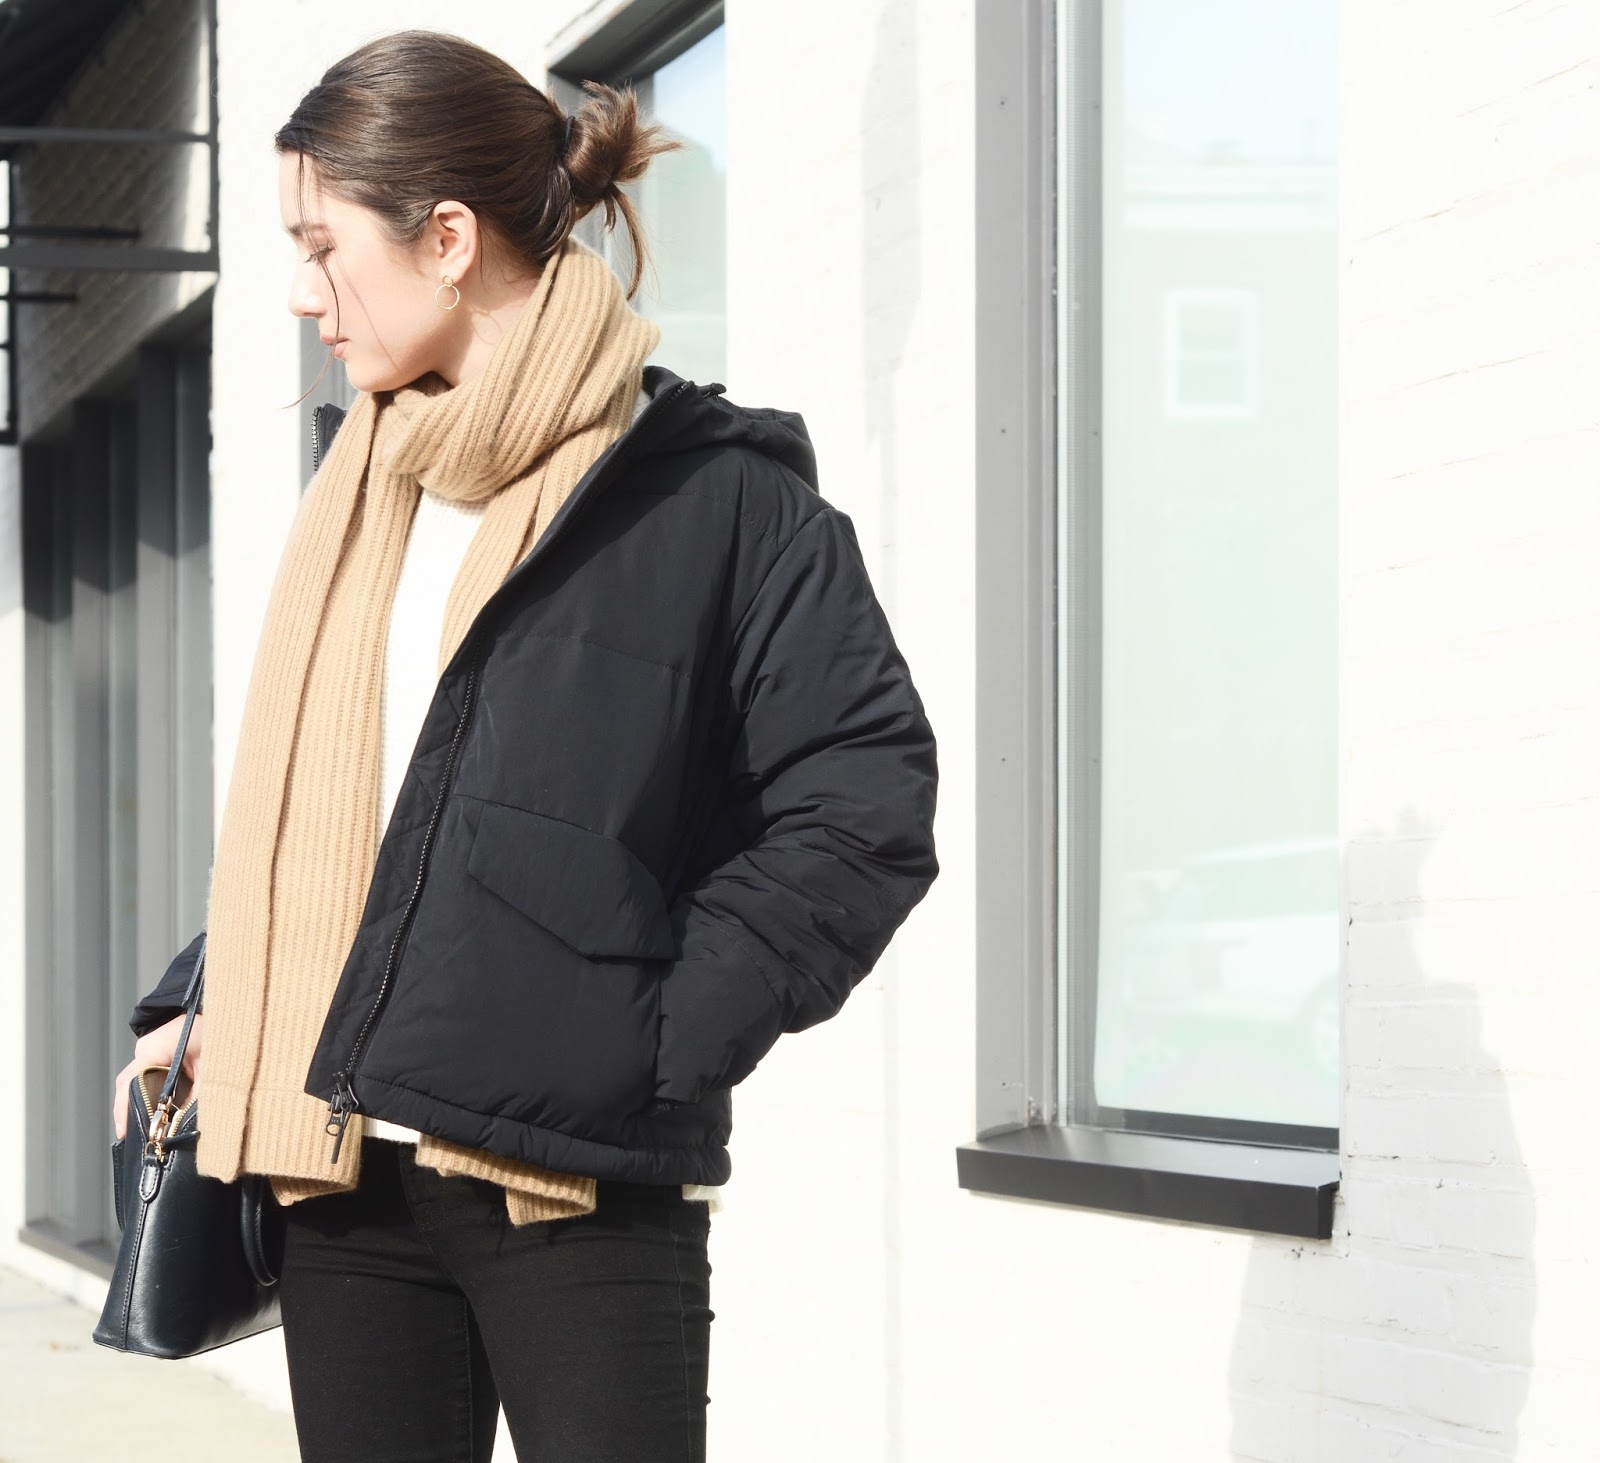 Everlane Short Puffer Jacket Review Photos Sizing Fit Petite